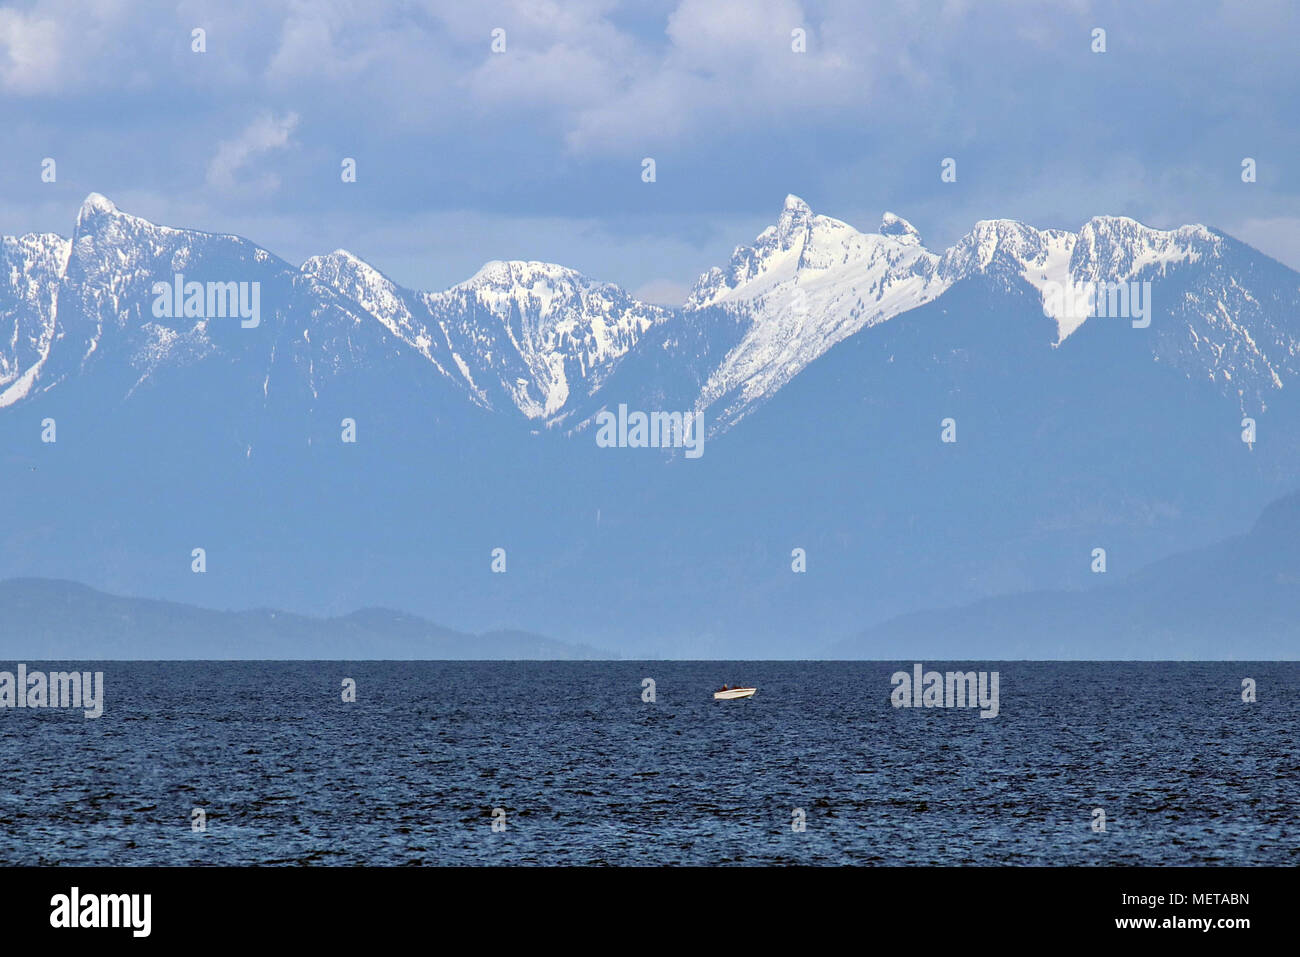 Mountains of Howe Sound across the Salish Sea from Nanaimo on Canada's Vancouver Island off the coast of British Columbia - Stock Image